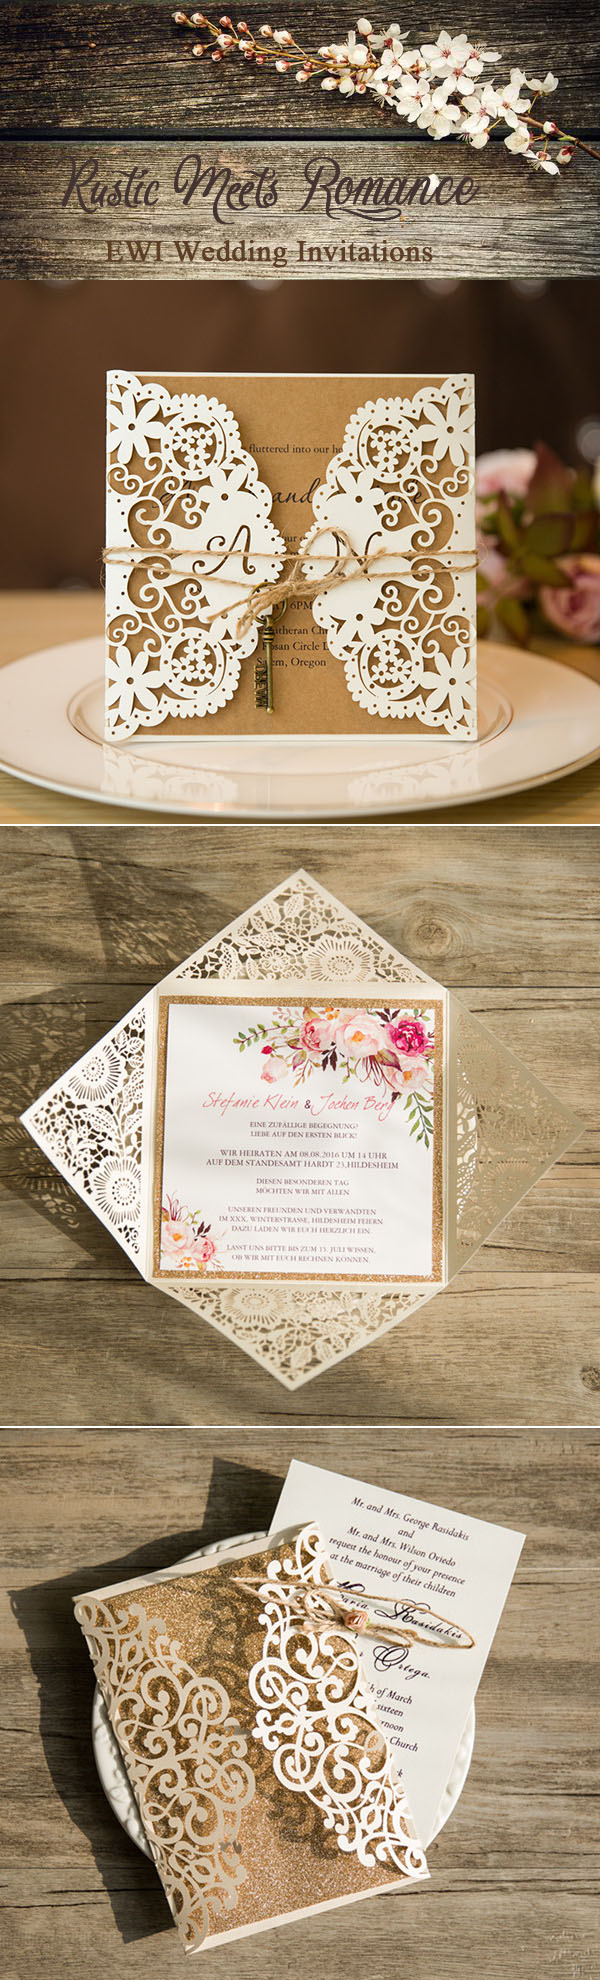 rustic meets romance wedding invitations collection